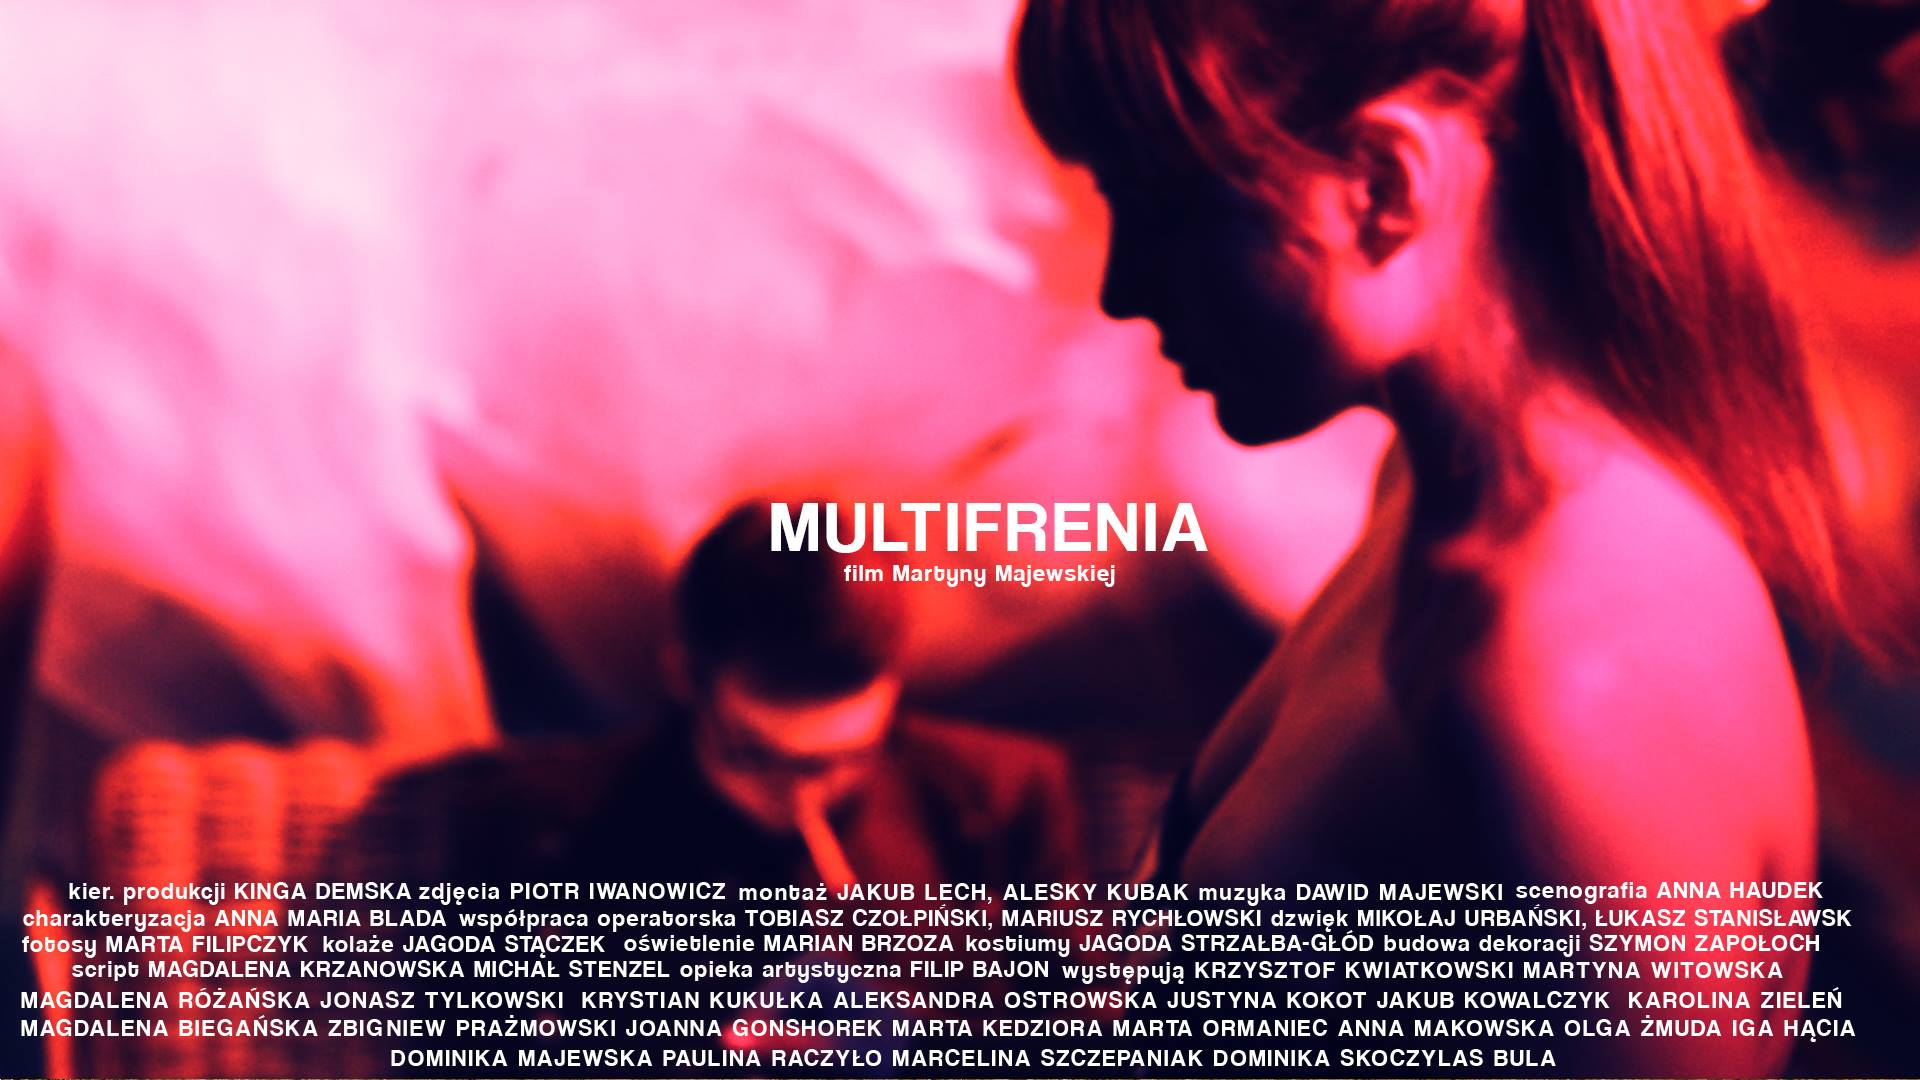 short film MULTIFRENIA